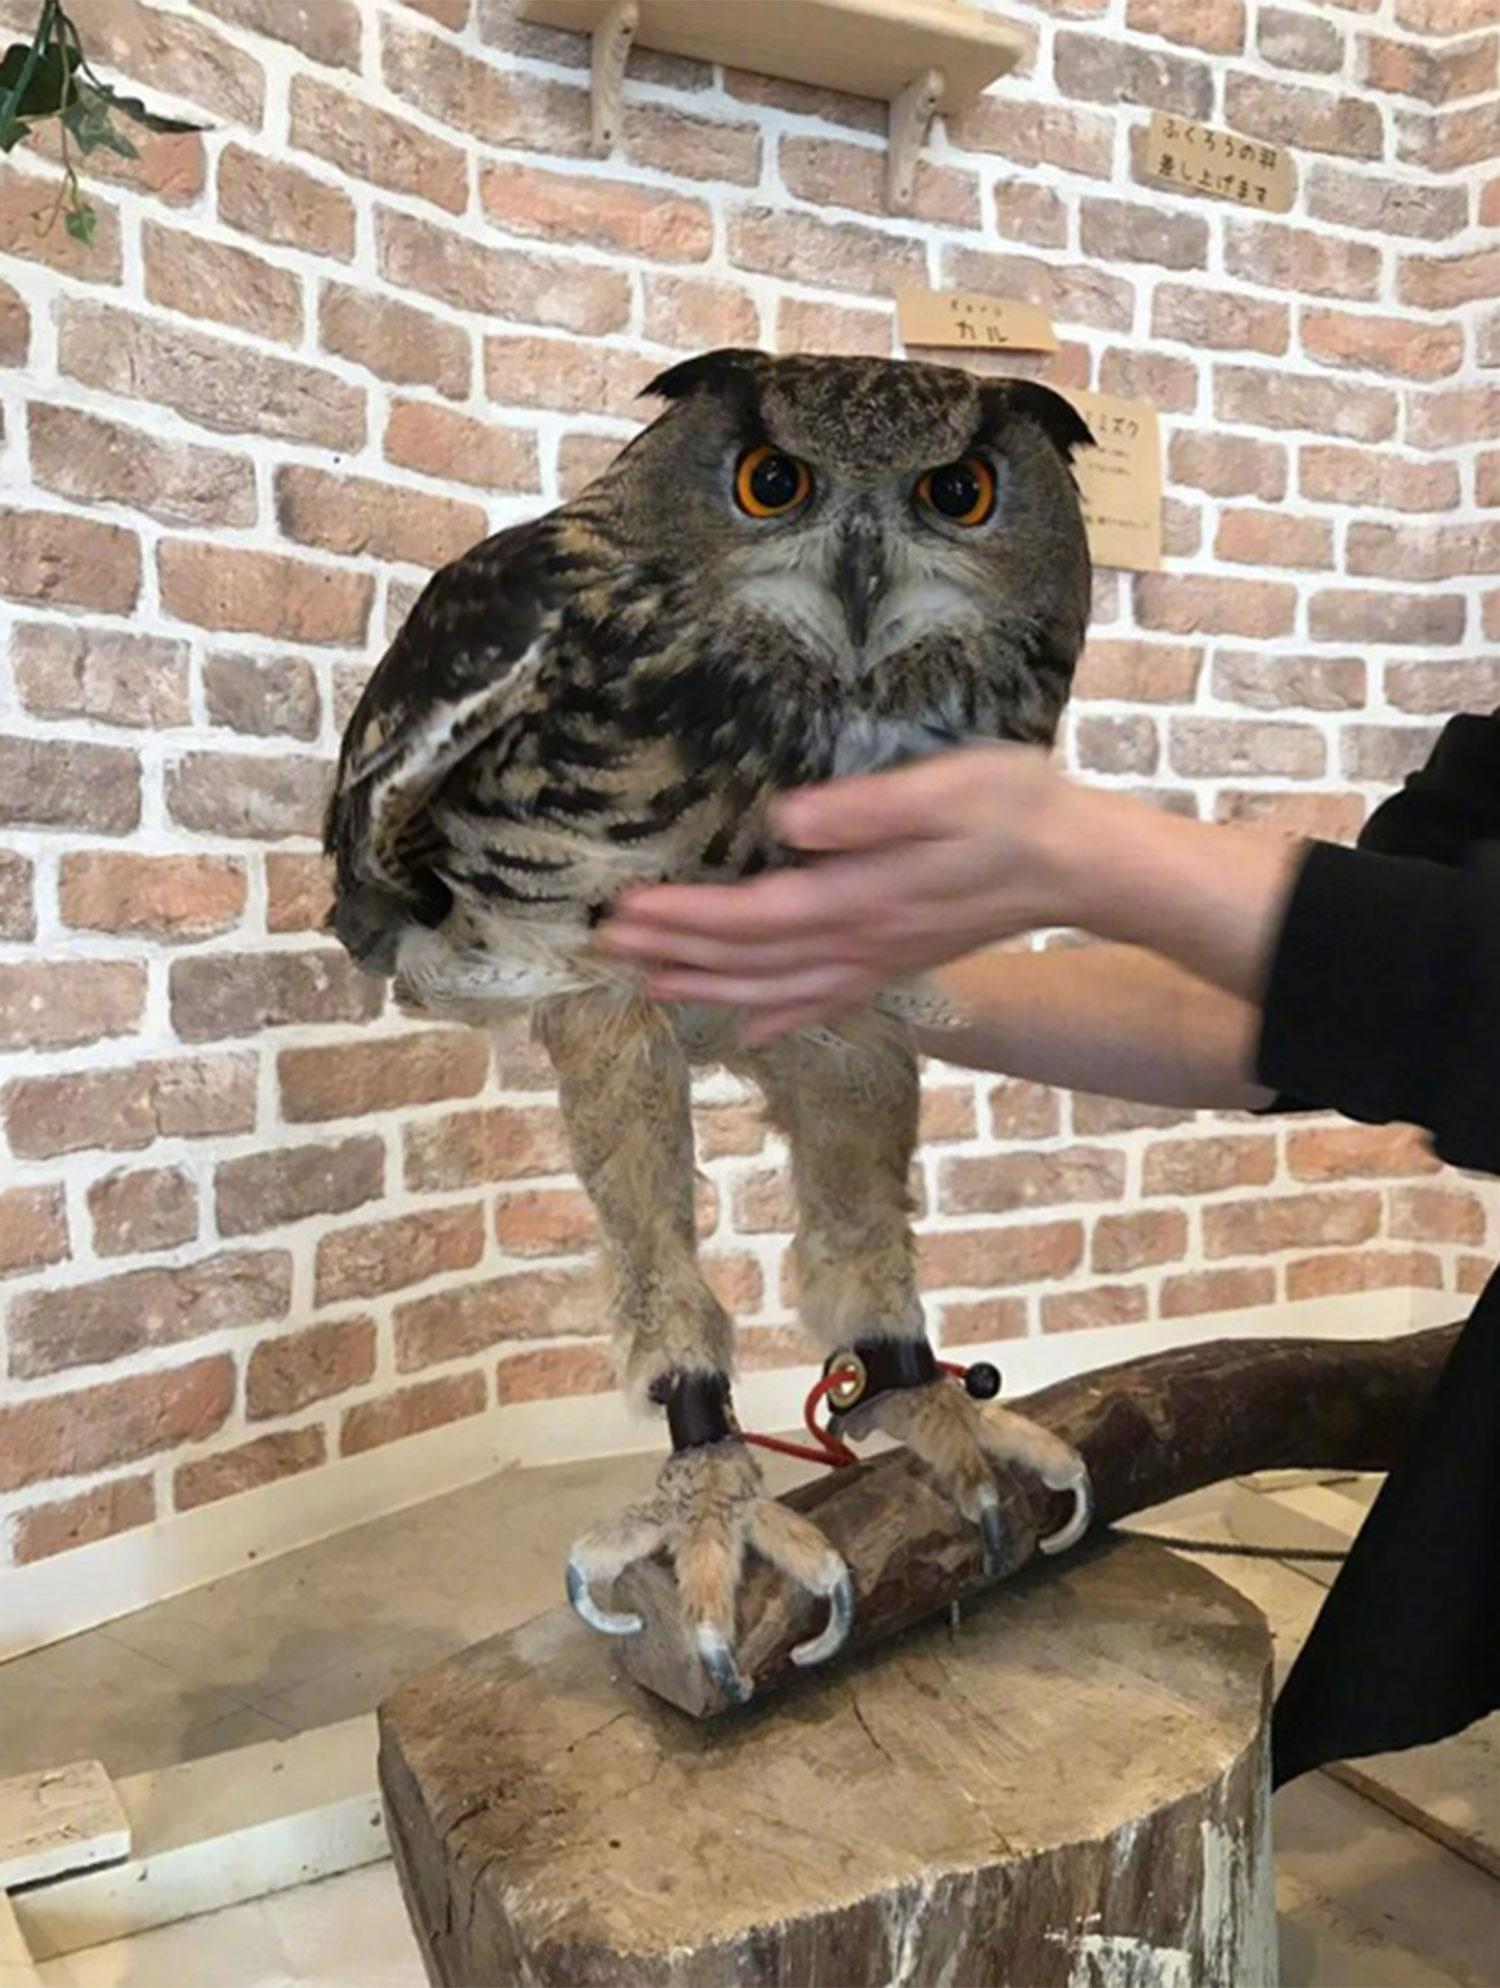 Owl Legs : Owl's, Freaking, People, Out...but, Turns